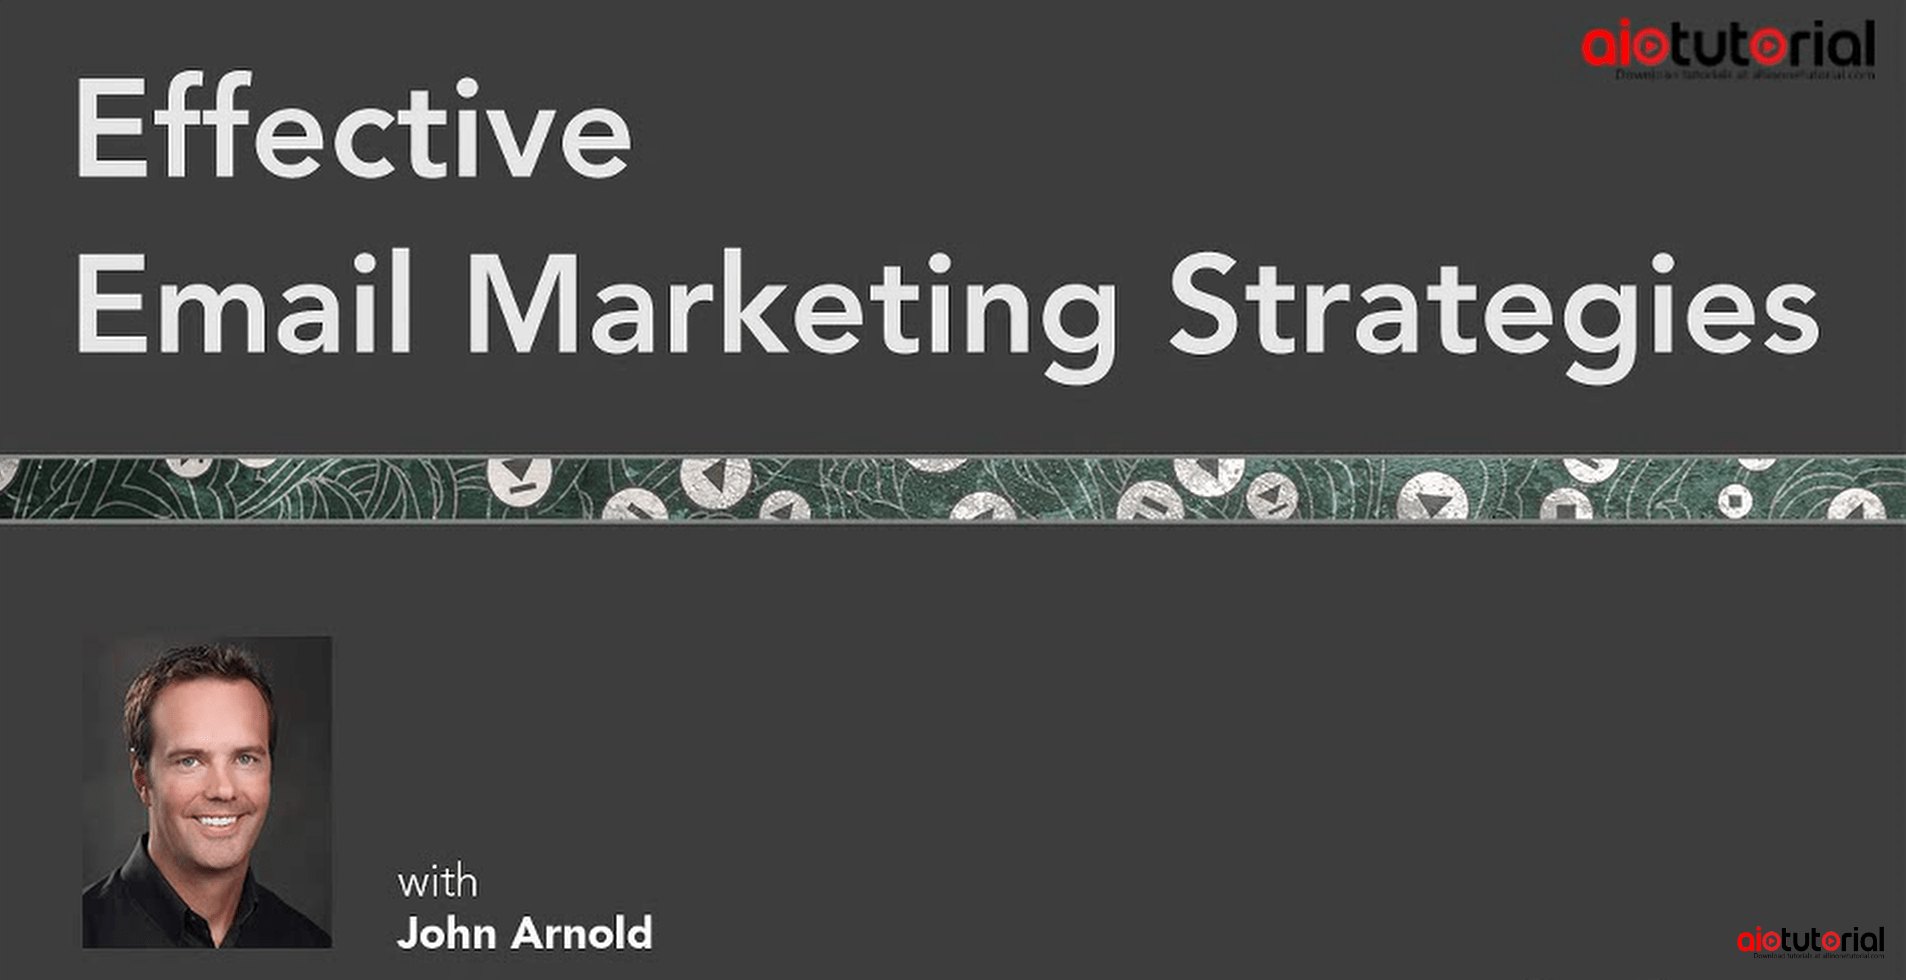 Effective Email Marketing Strategies (Email Marketing Basics) (Lynda) Free Download